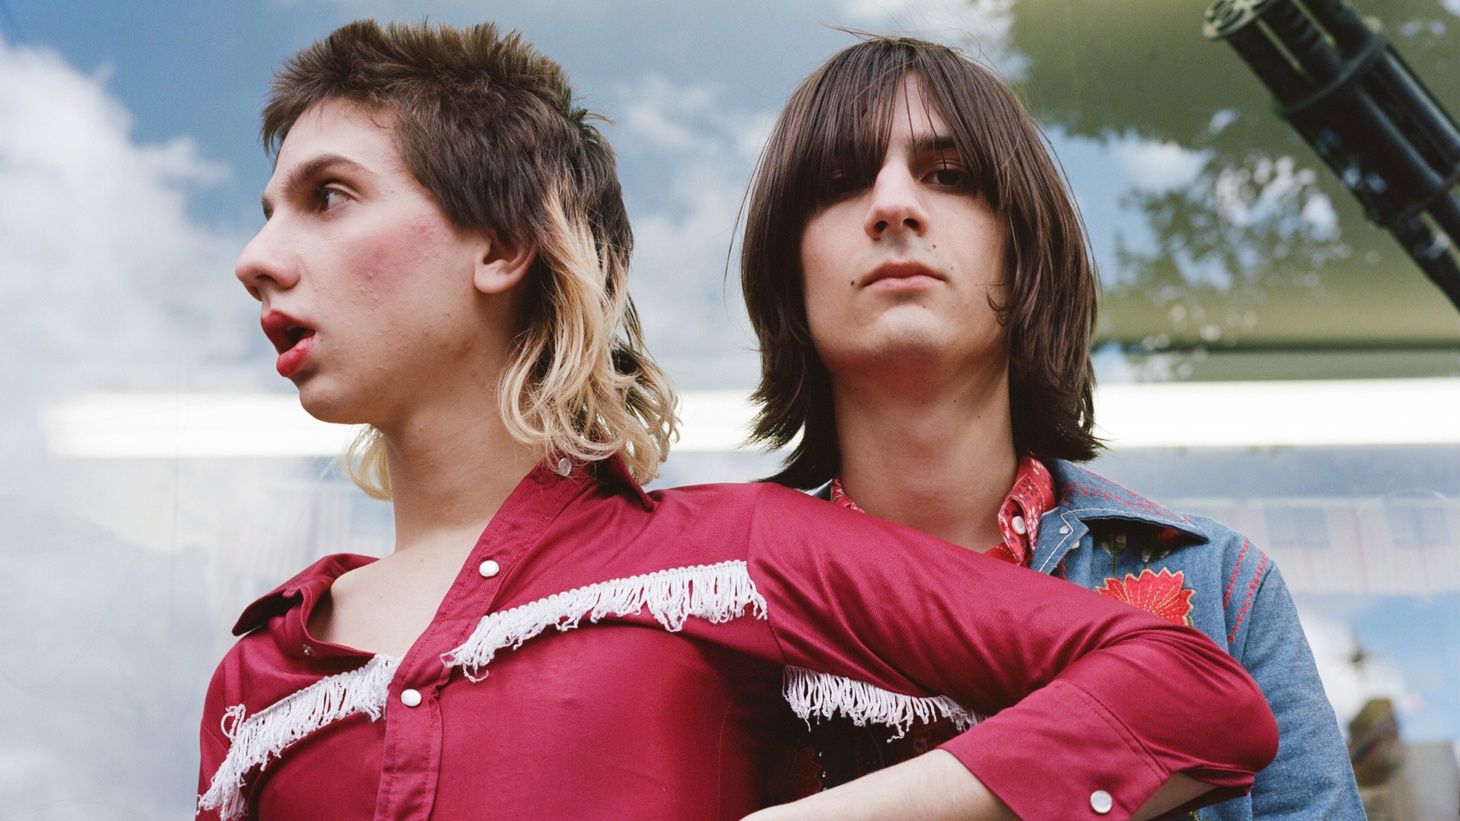 If you didn't know The Lemon Twigs, you might think there was a new British invasion on the horizon. The Long Island natives, teenage brothers Brian (19) and Michael (17) D'Addario, have never aspired to anything more than make music together.